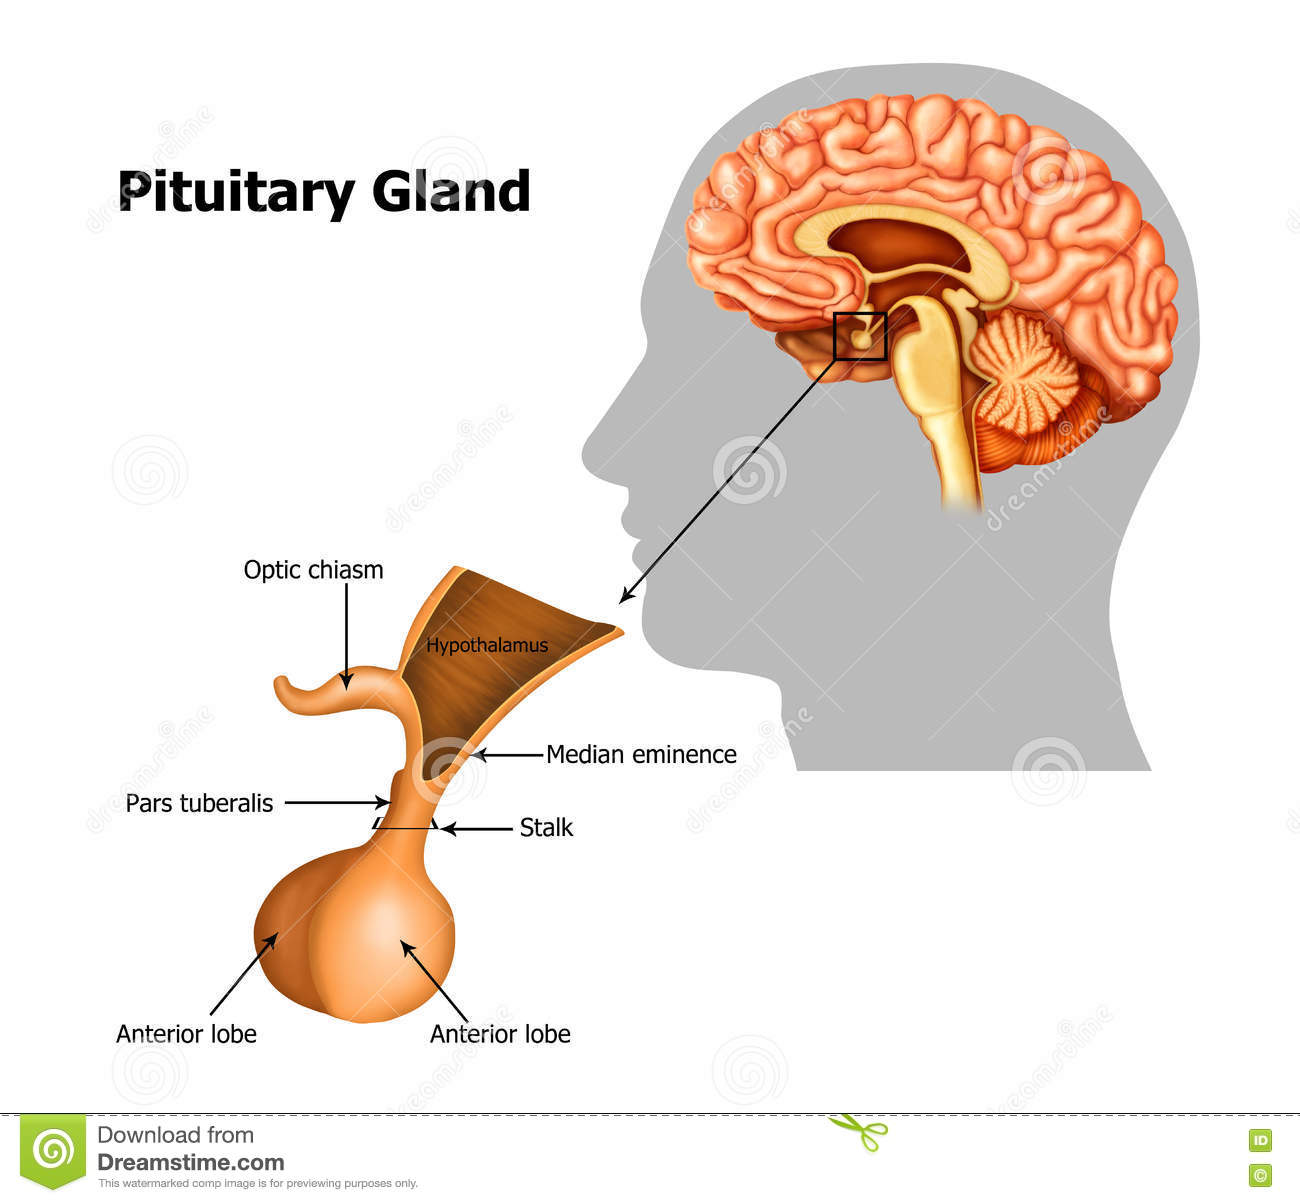 Pituitary gland Coursework Academic Service pppaperrdbf.mestudio.us